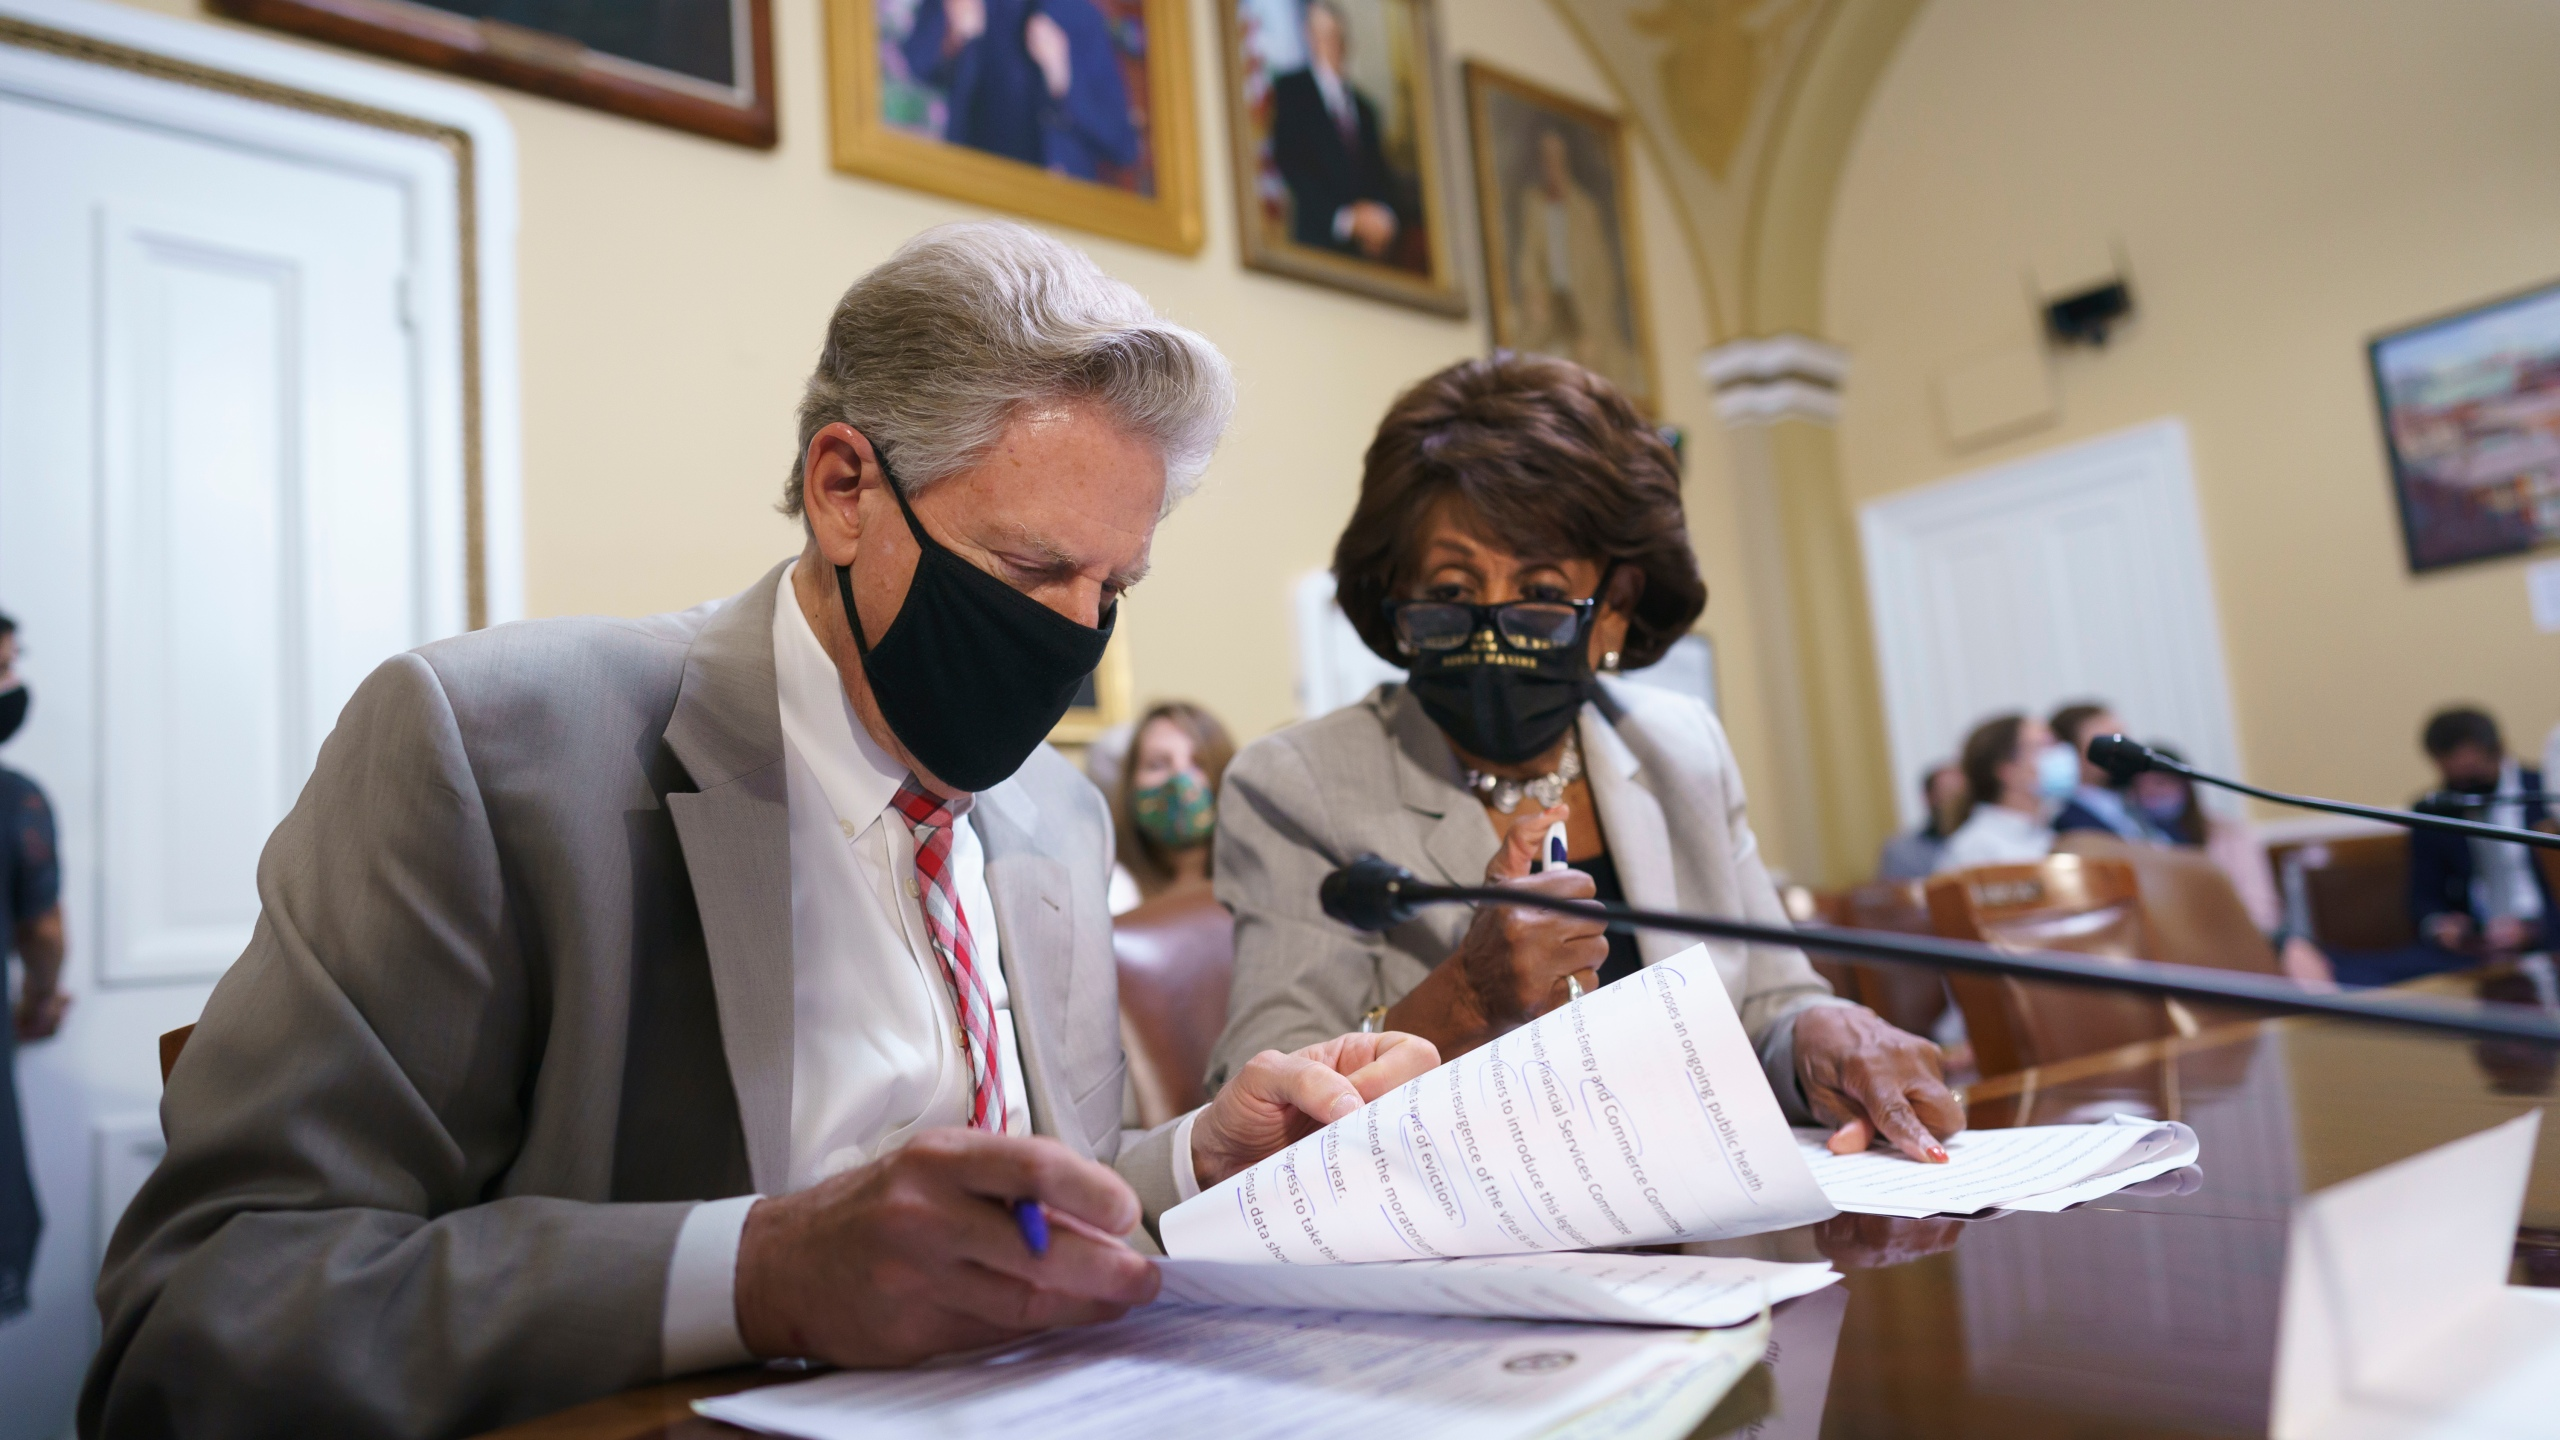 """House Energy and Commerce Chairman Frank Pallone, D-N.J., left, and House Financial Services Committee Chairwoman Maxine Waters, D-Calif., go over their notes at the House Rules Committee as they prepare an emergency extension of the eviction moratorium, at the Capitol in Washington, Friday, July 30, 2021. President Joe Biden called on """"Congress to extend the eviction moratorium to protect such vulnerable renters and their families without delay."""" (AP Photo/J. Scott Applewhite)"""